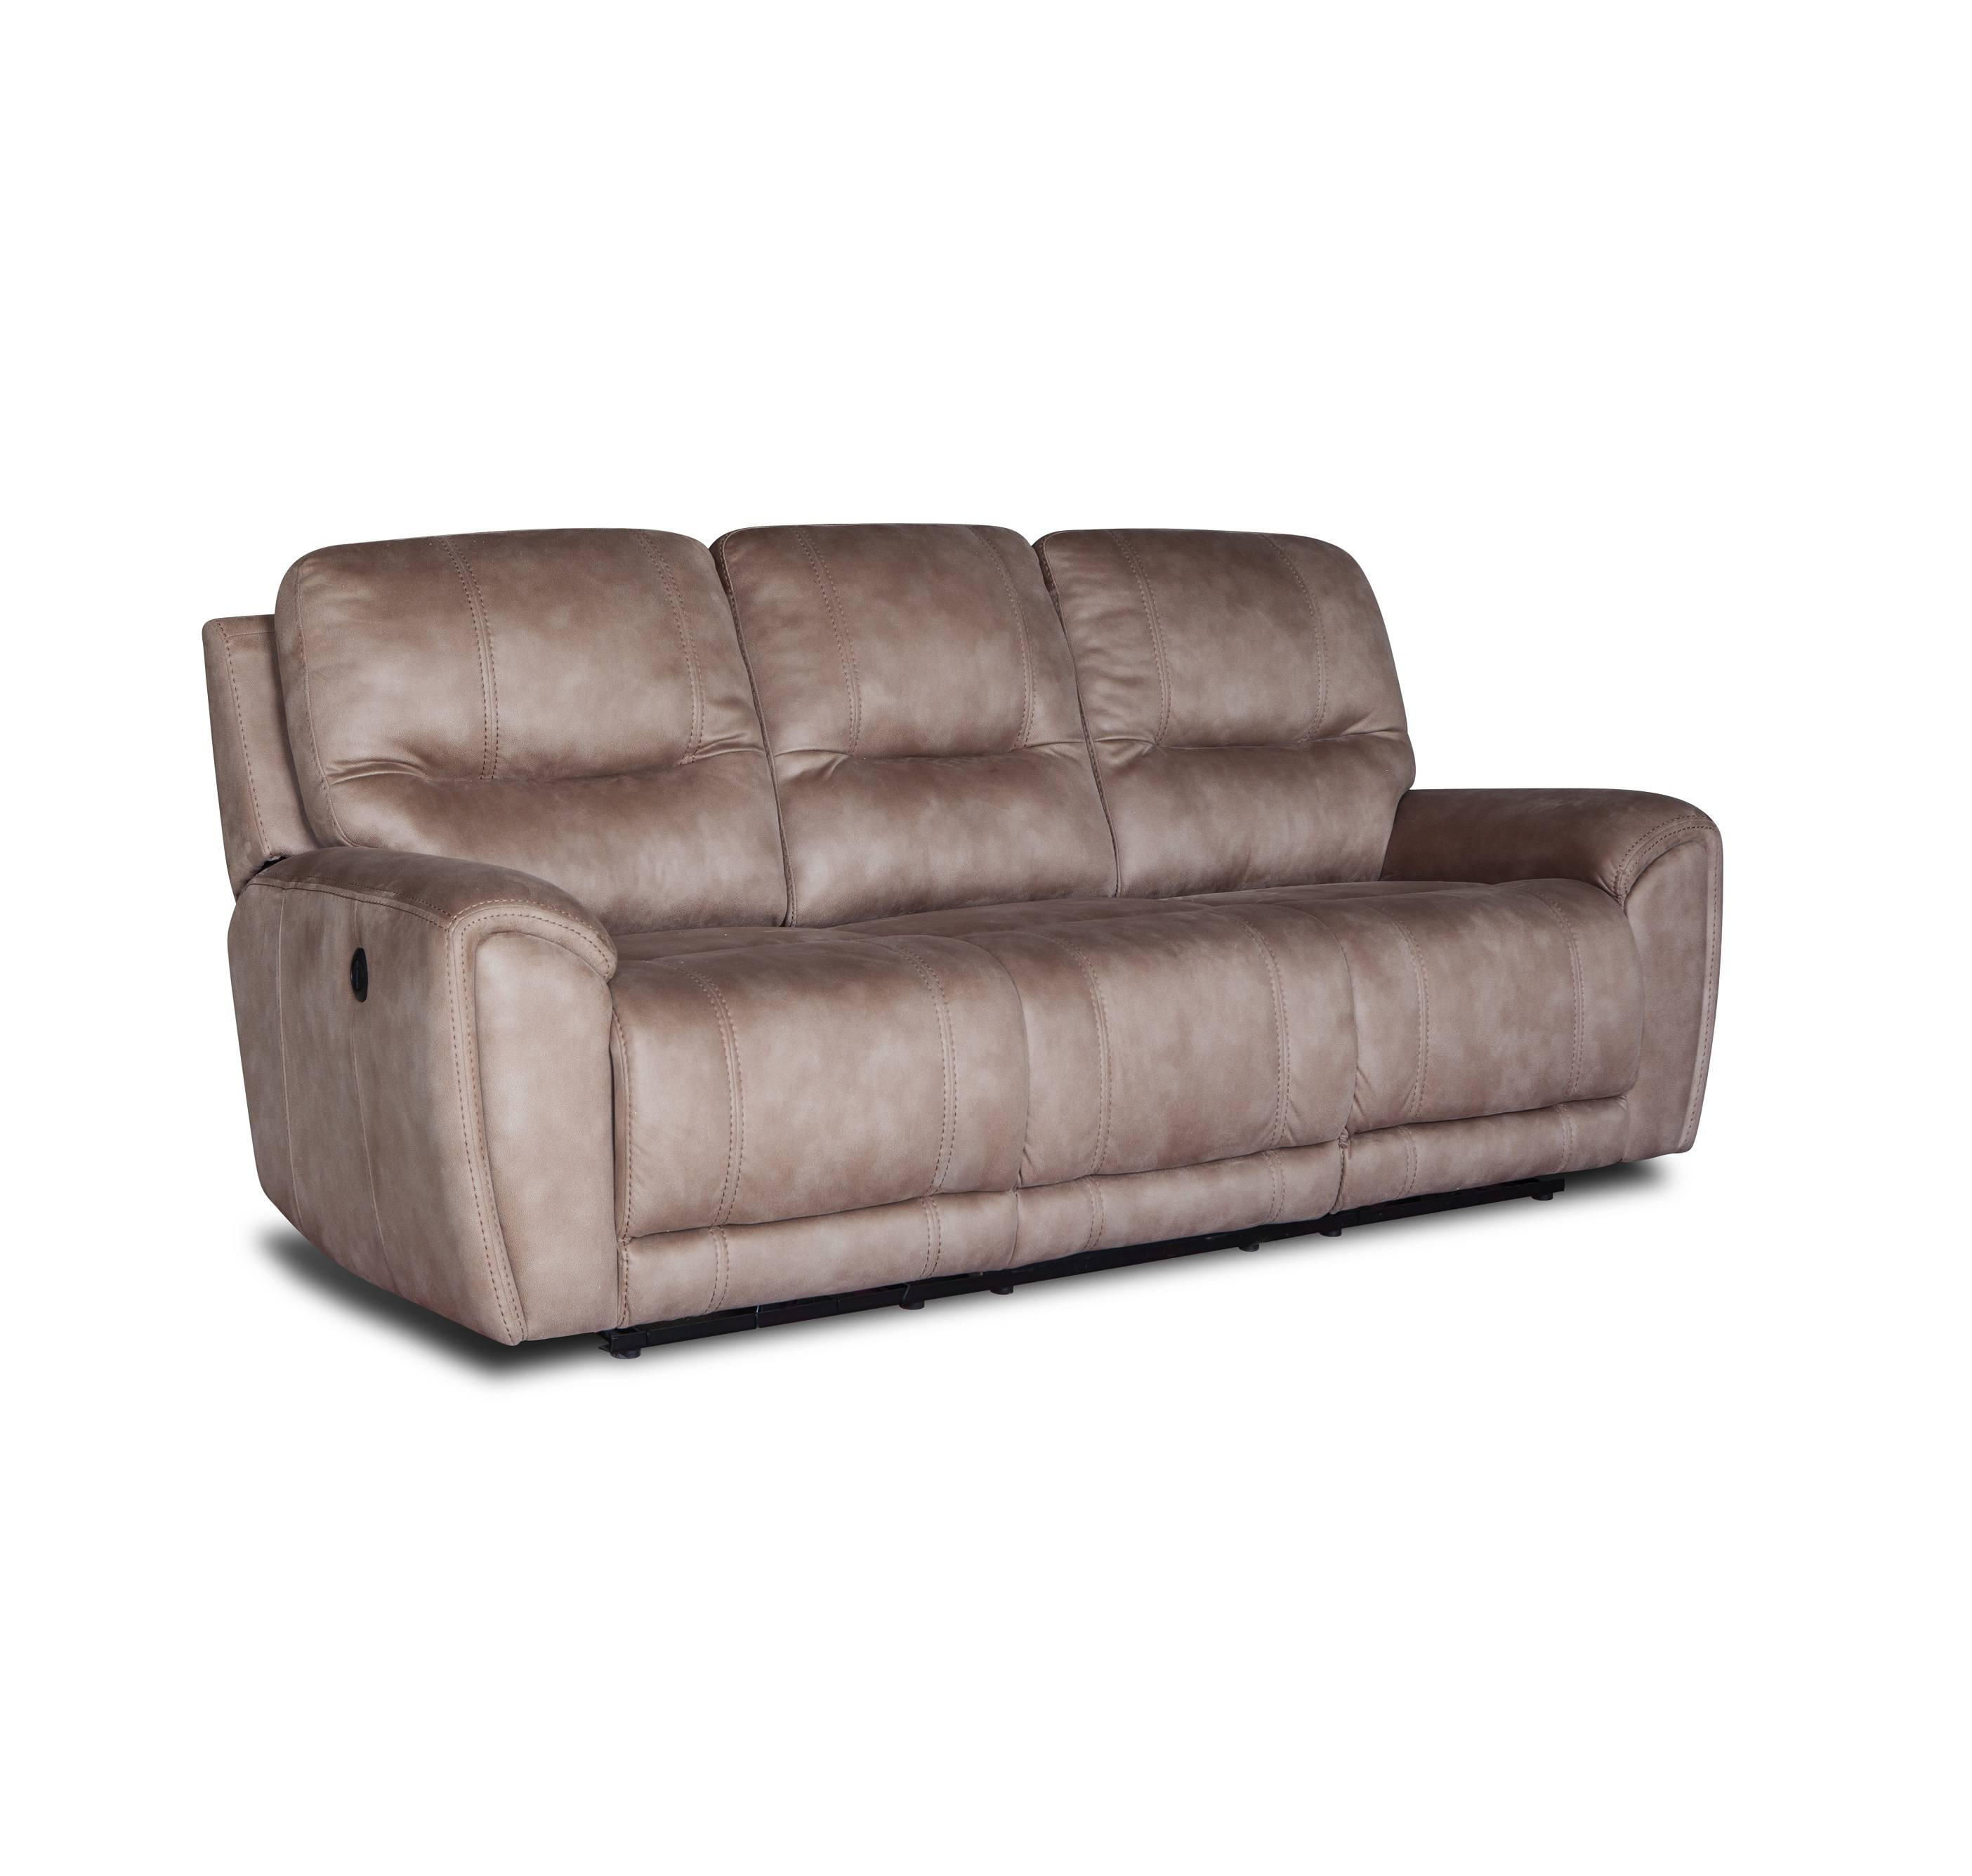 Living room furniture 3+2+1 Leather power recliner sofa